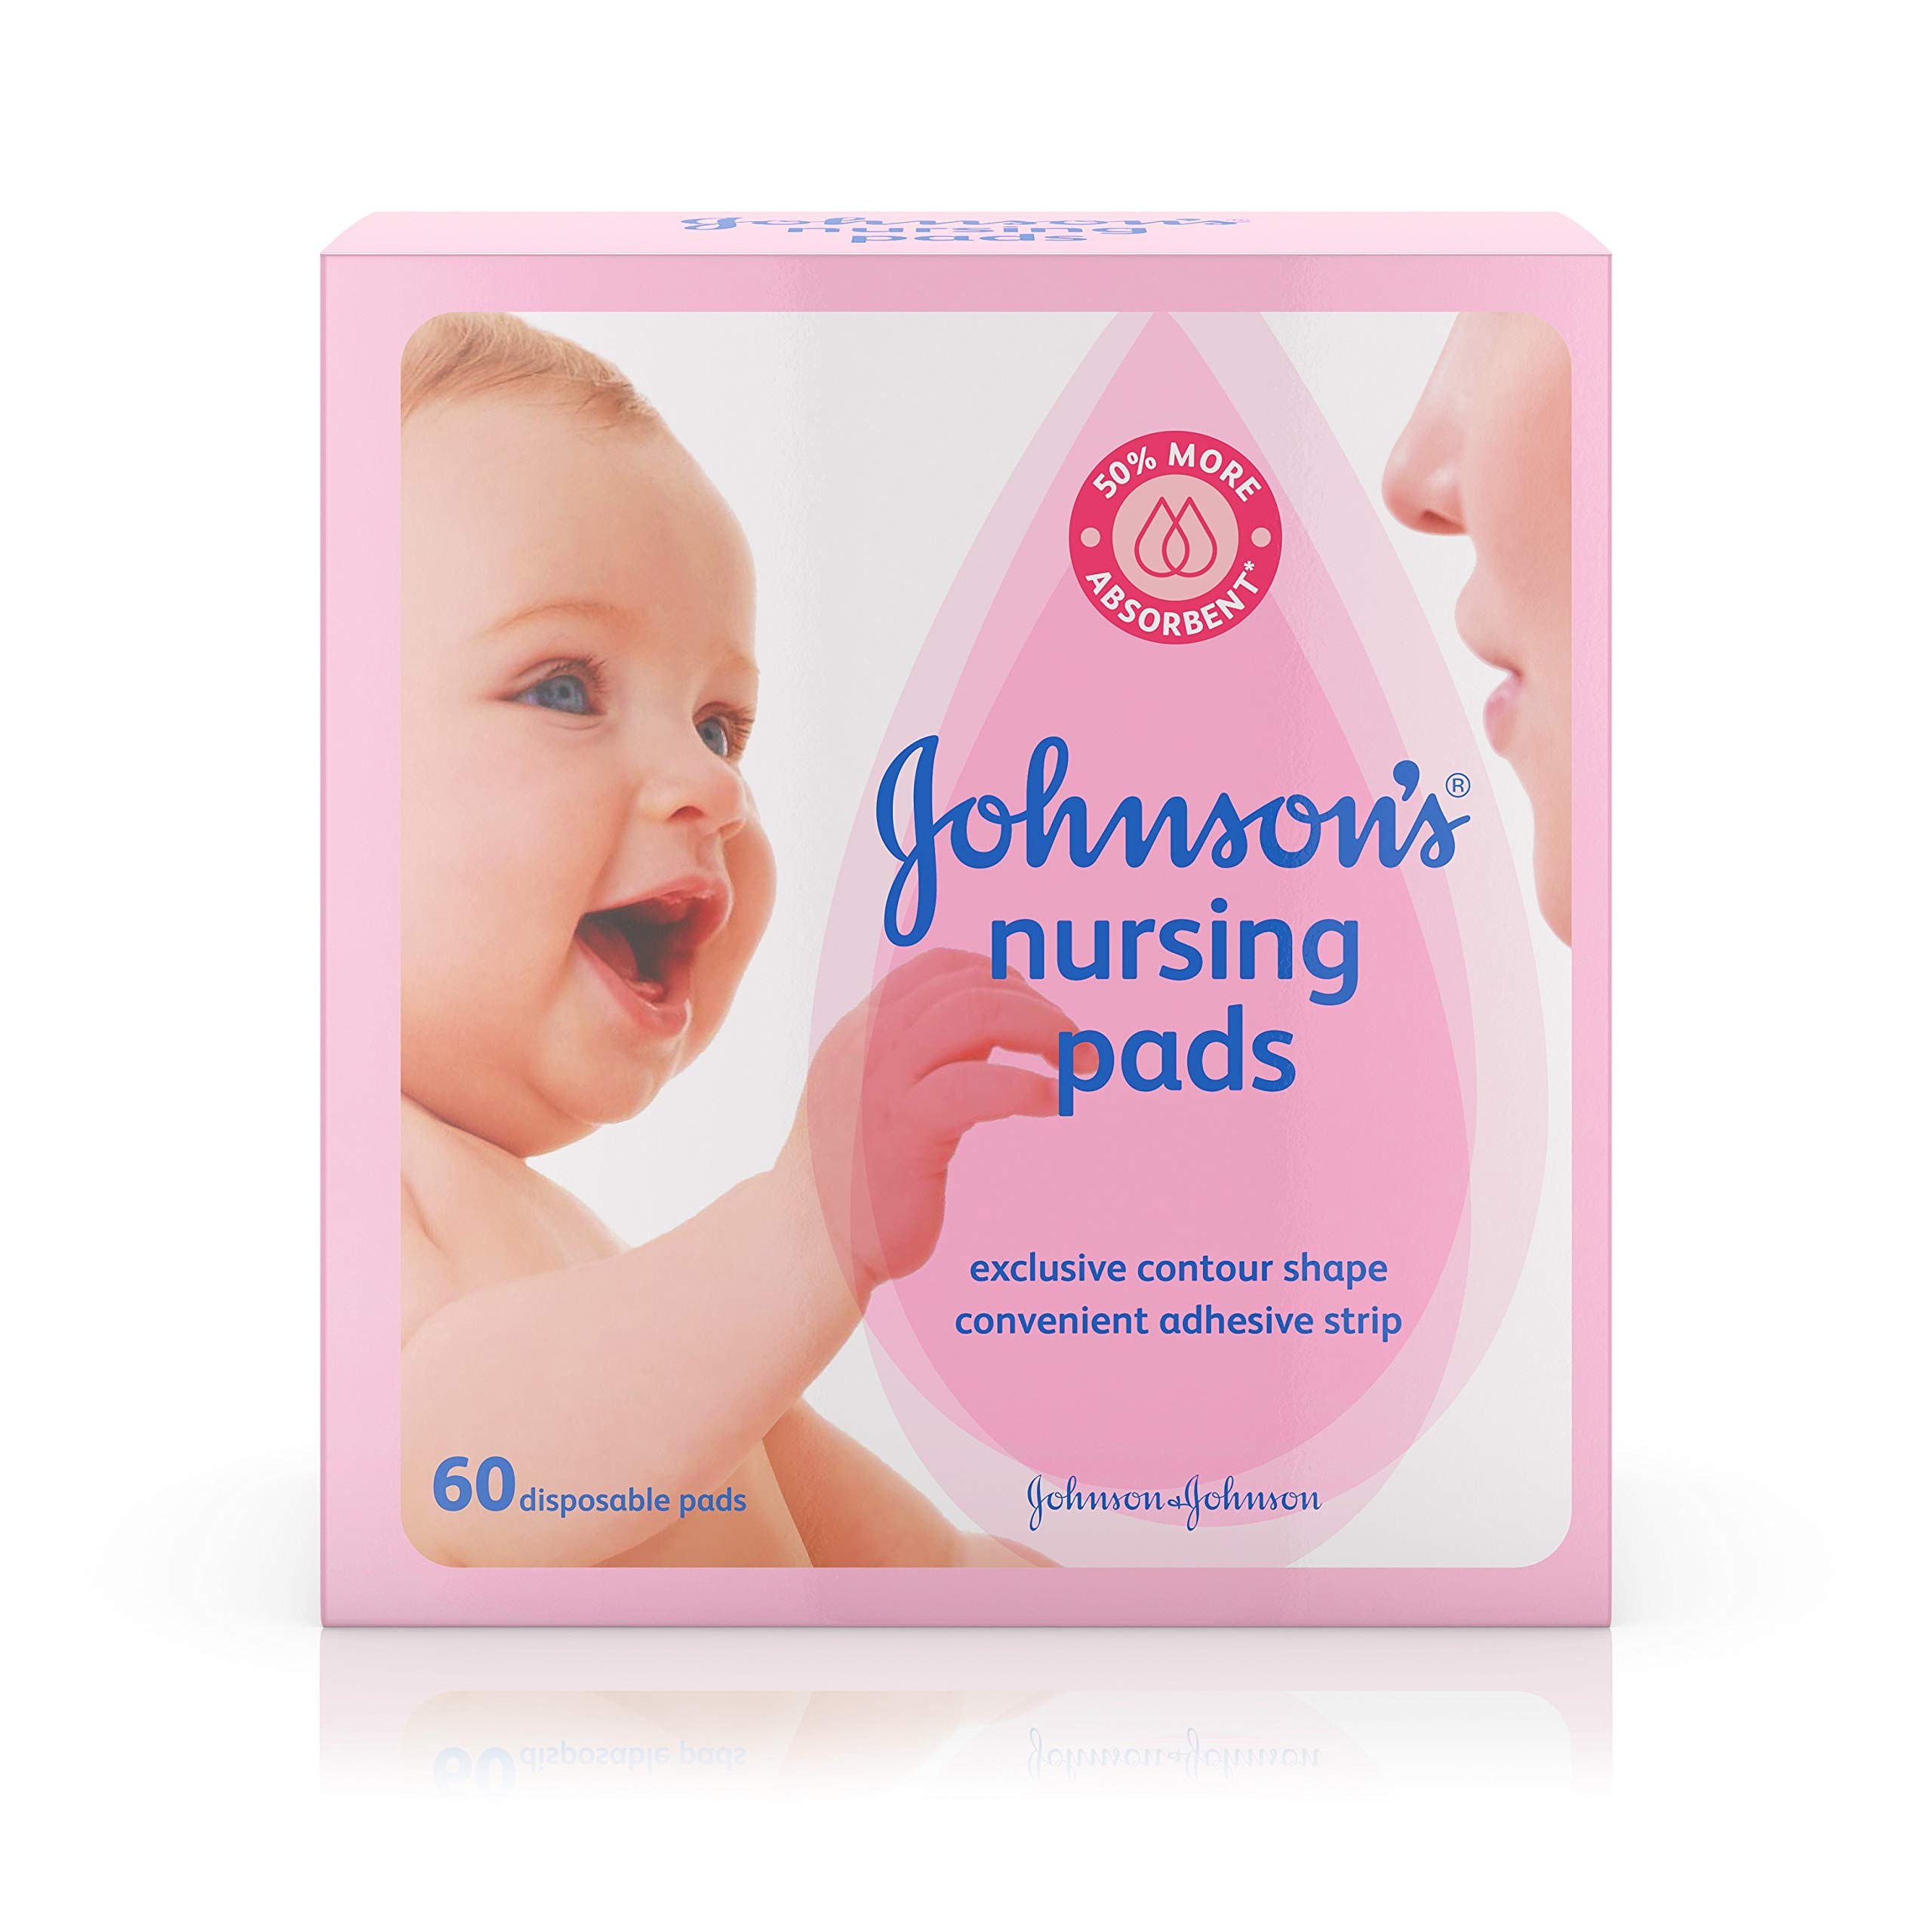 Johnson's Disposable Nursing Pads with Natural Cotton, Super Absorbent, Comfortable, and Breathable, Natural Contour Shape, 60 ct ( Pack of 2) by Johnson's